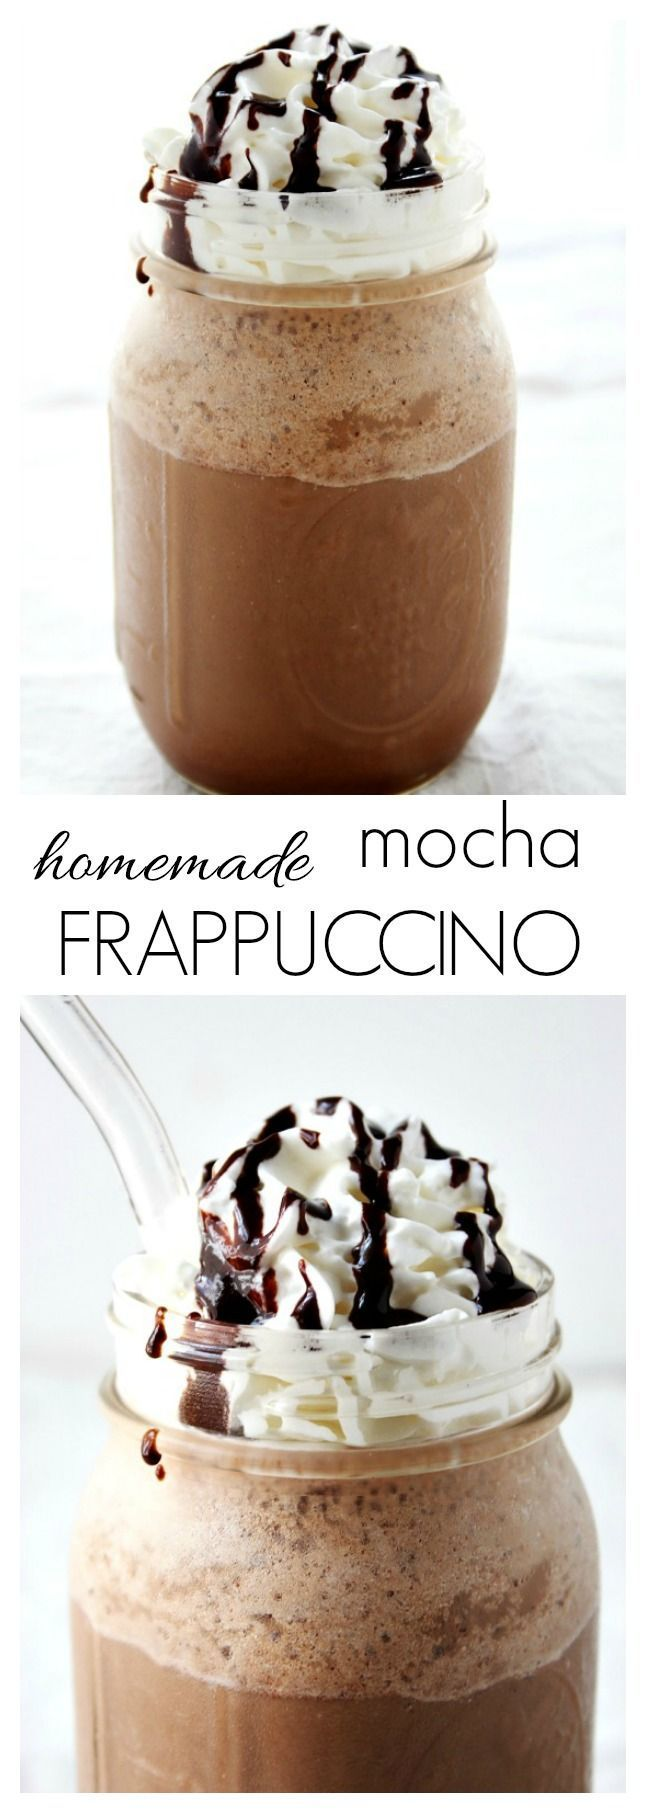 Homemade Mocha Frappuccino - a copycat coffee drink perfect for the hot days of Summer! It takes only 2 minutes to whip it up!